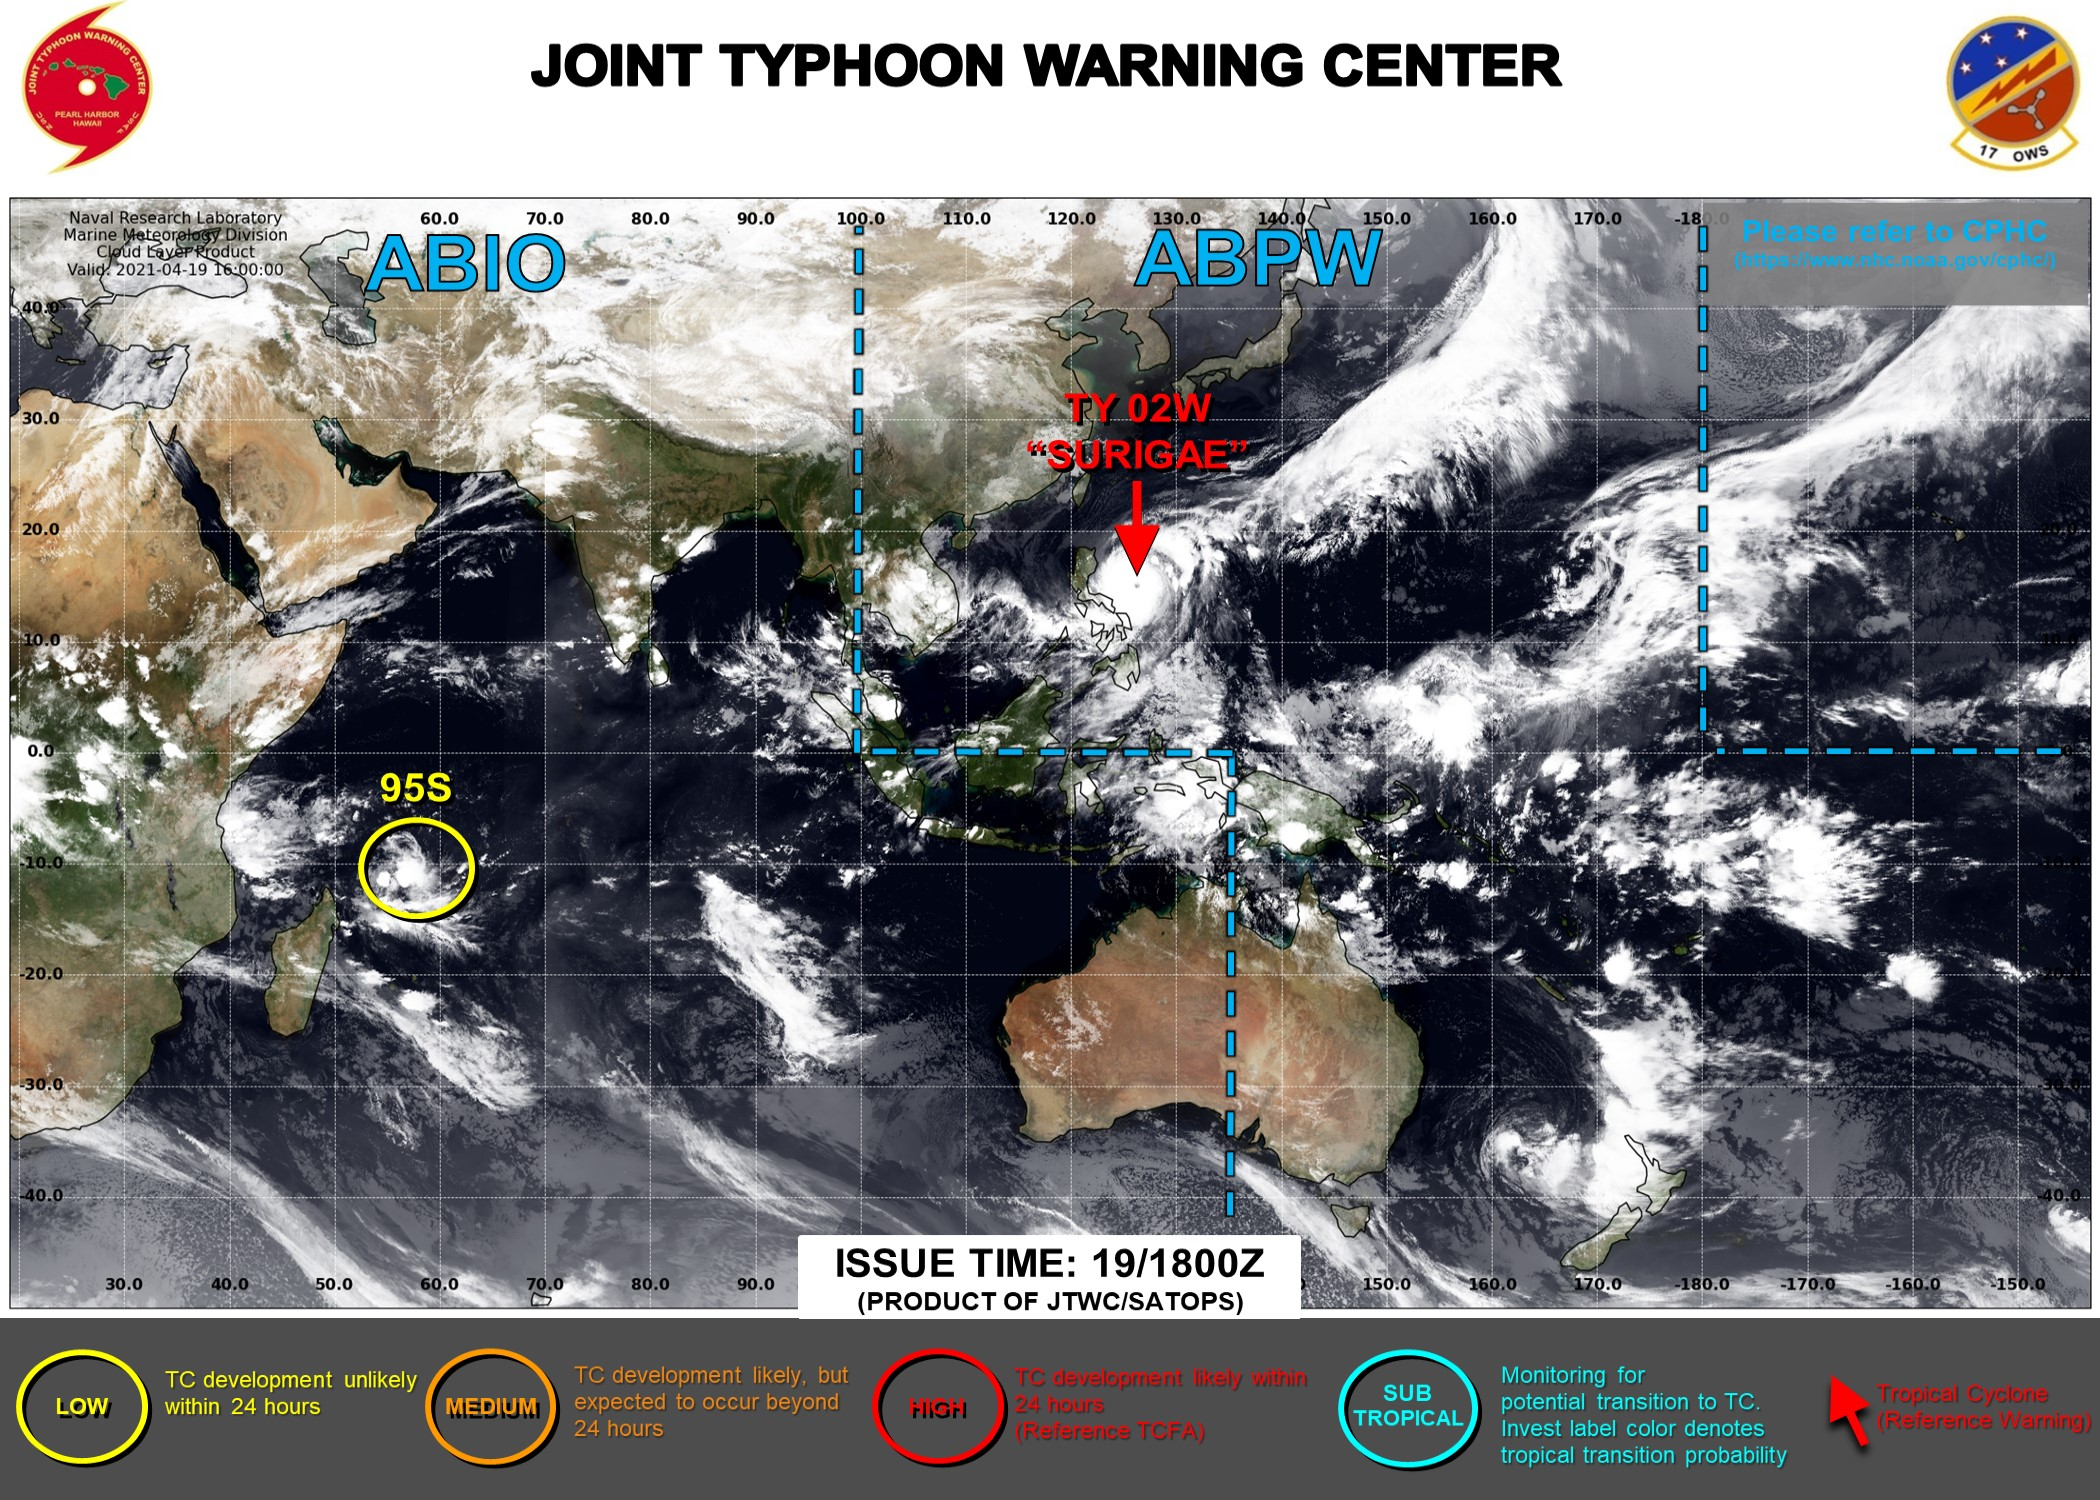 19/21UTC. THE JTWC HAS BEEN ISSUING 6HOURLY WARNINGS ON 02W(SURIGAE) AND 3HOURLY SATELLITE BULLETINS. OVER THE SOUTH IDNIAN OCEAN INVEST 95S IS STILL ASSESSED AS HAVING LOW CHANCES OF REACHING 35KNOTS WITHIN THE NEXT 24HOURS.